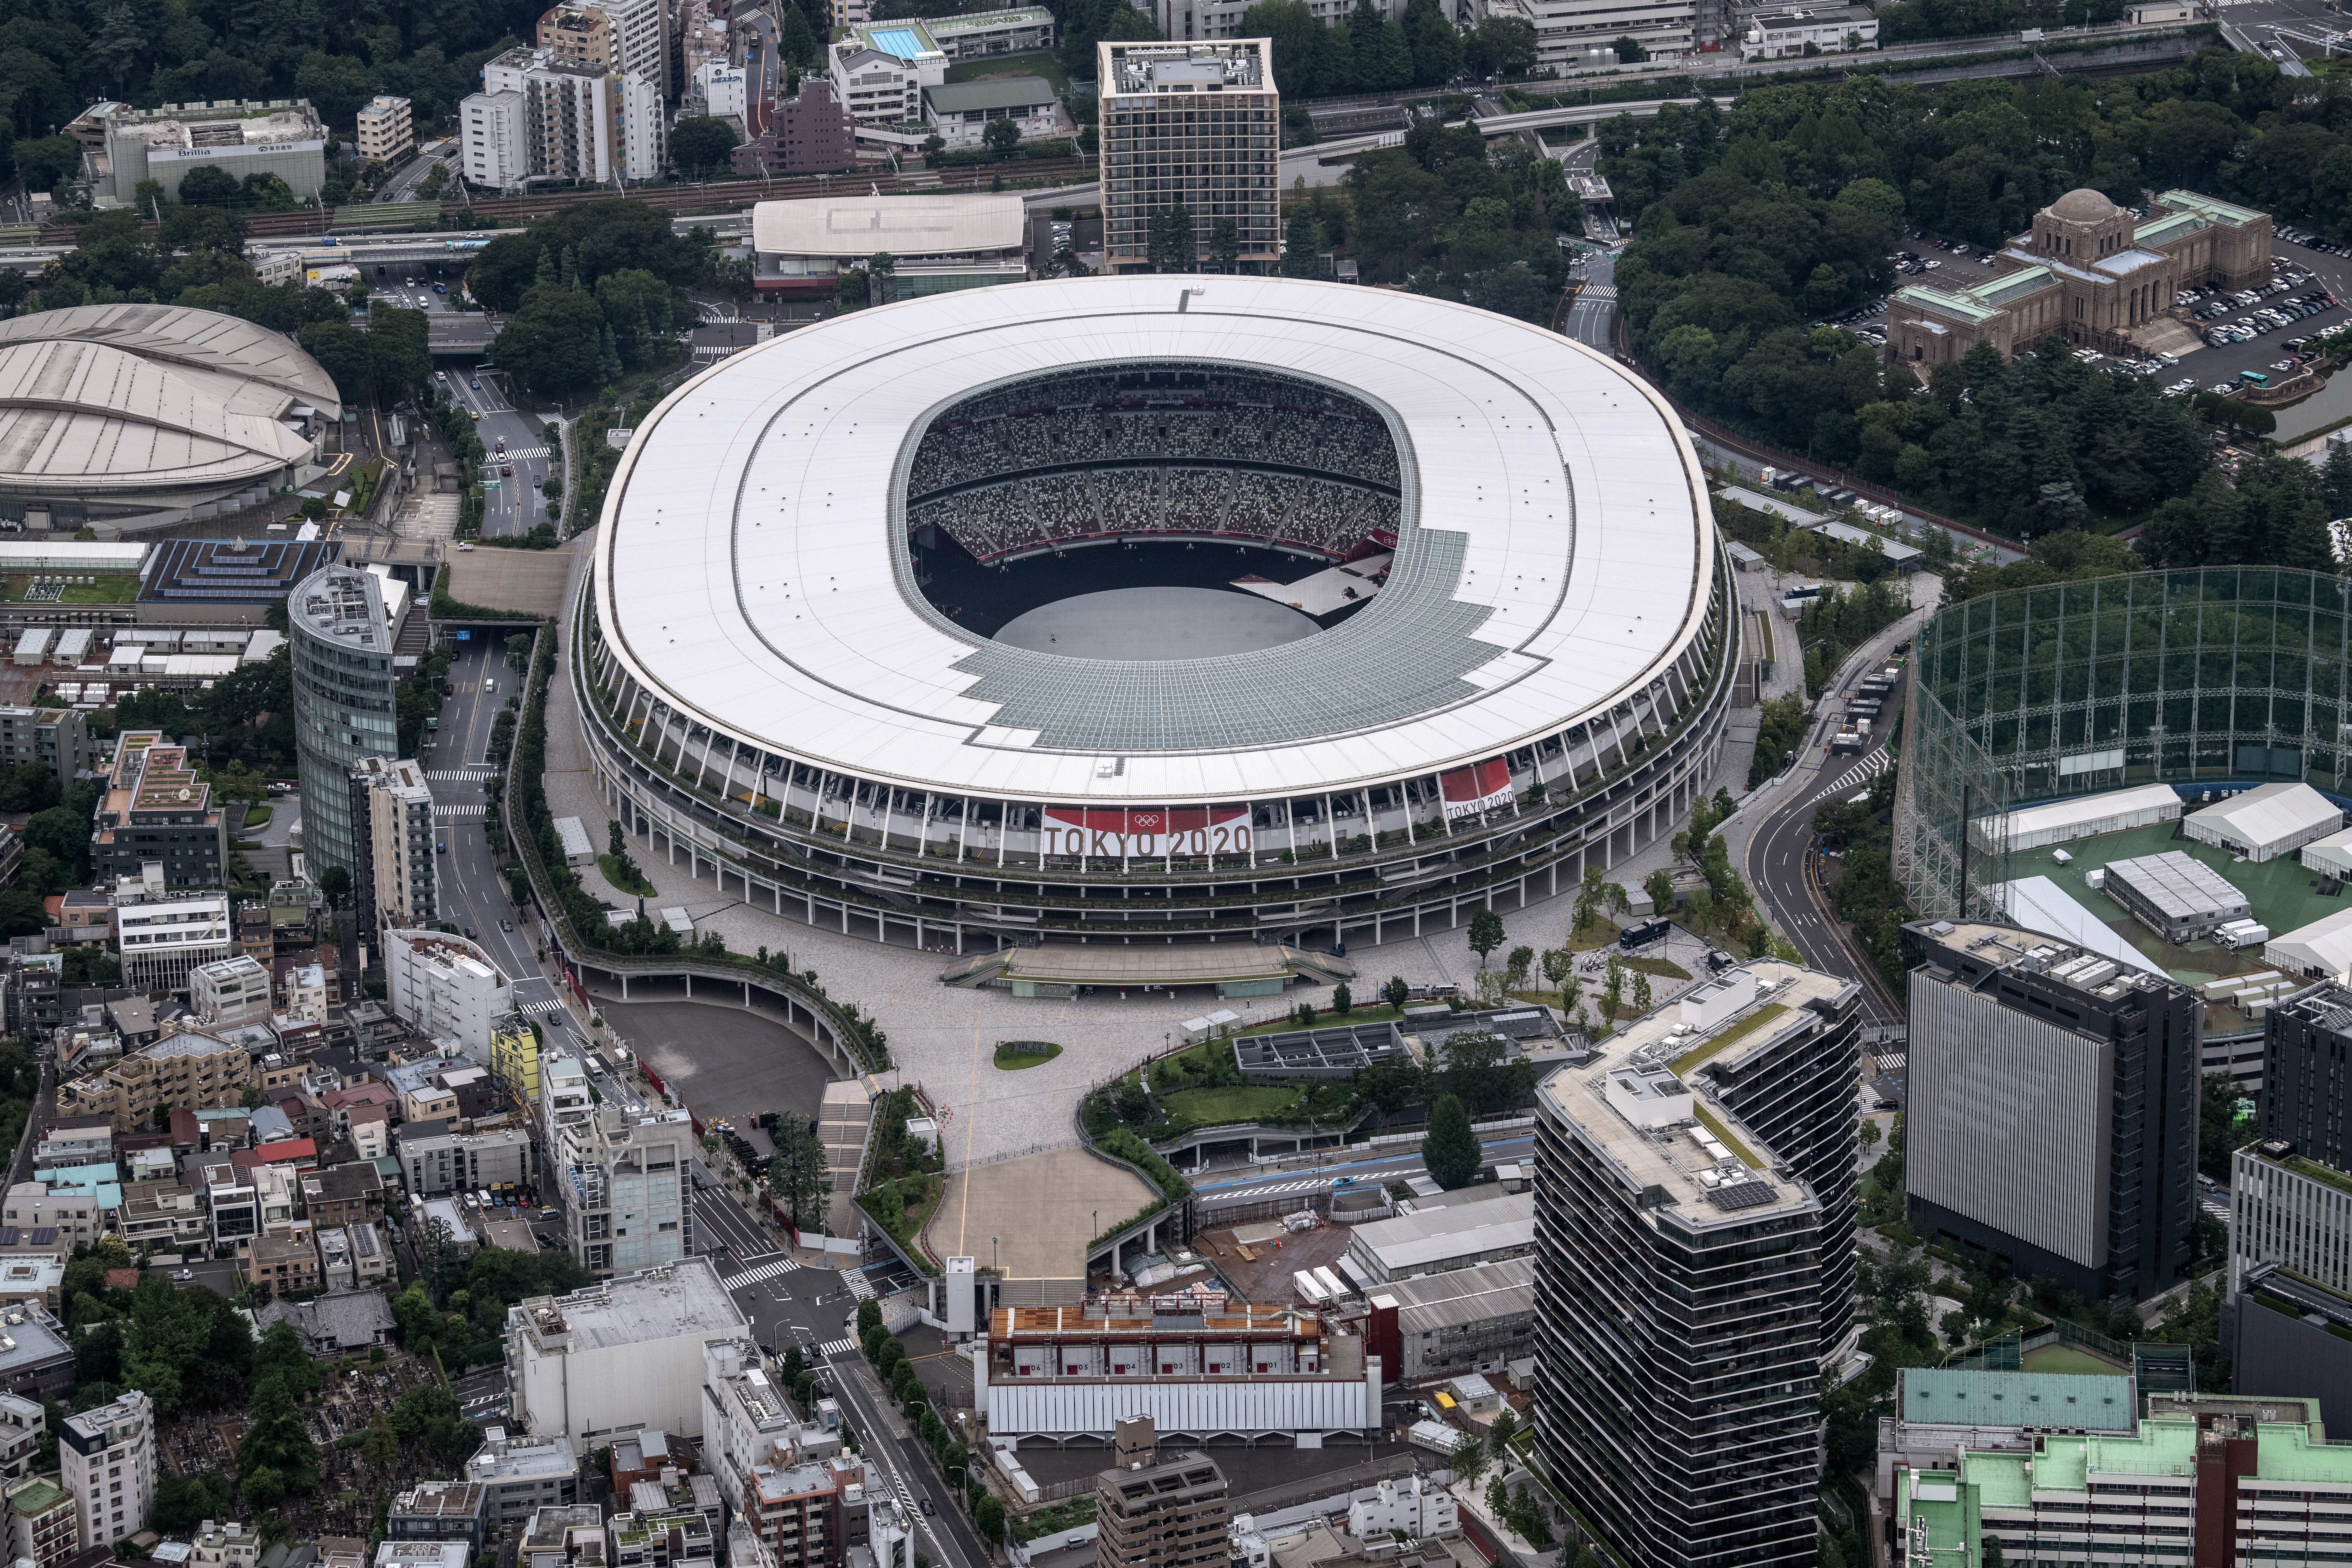 The Tokyo Olympic Stadium is pictured from a helicopter on June 26, 2021 in Tokyo, Japan. With less than one month to go before the start of the Tokyo Olympic Games, final preparations are being made to venues despite ongoing concern over the viability of holding the event during the global coronavirus pandemic. (Photo by Carl Court/Getty Images)